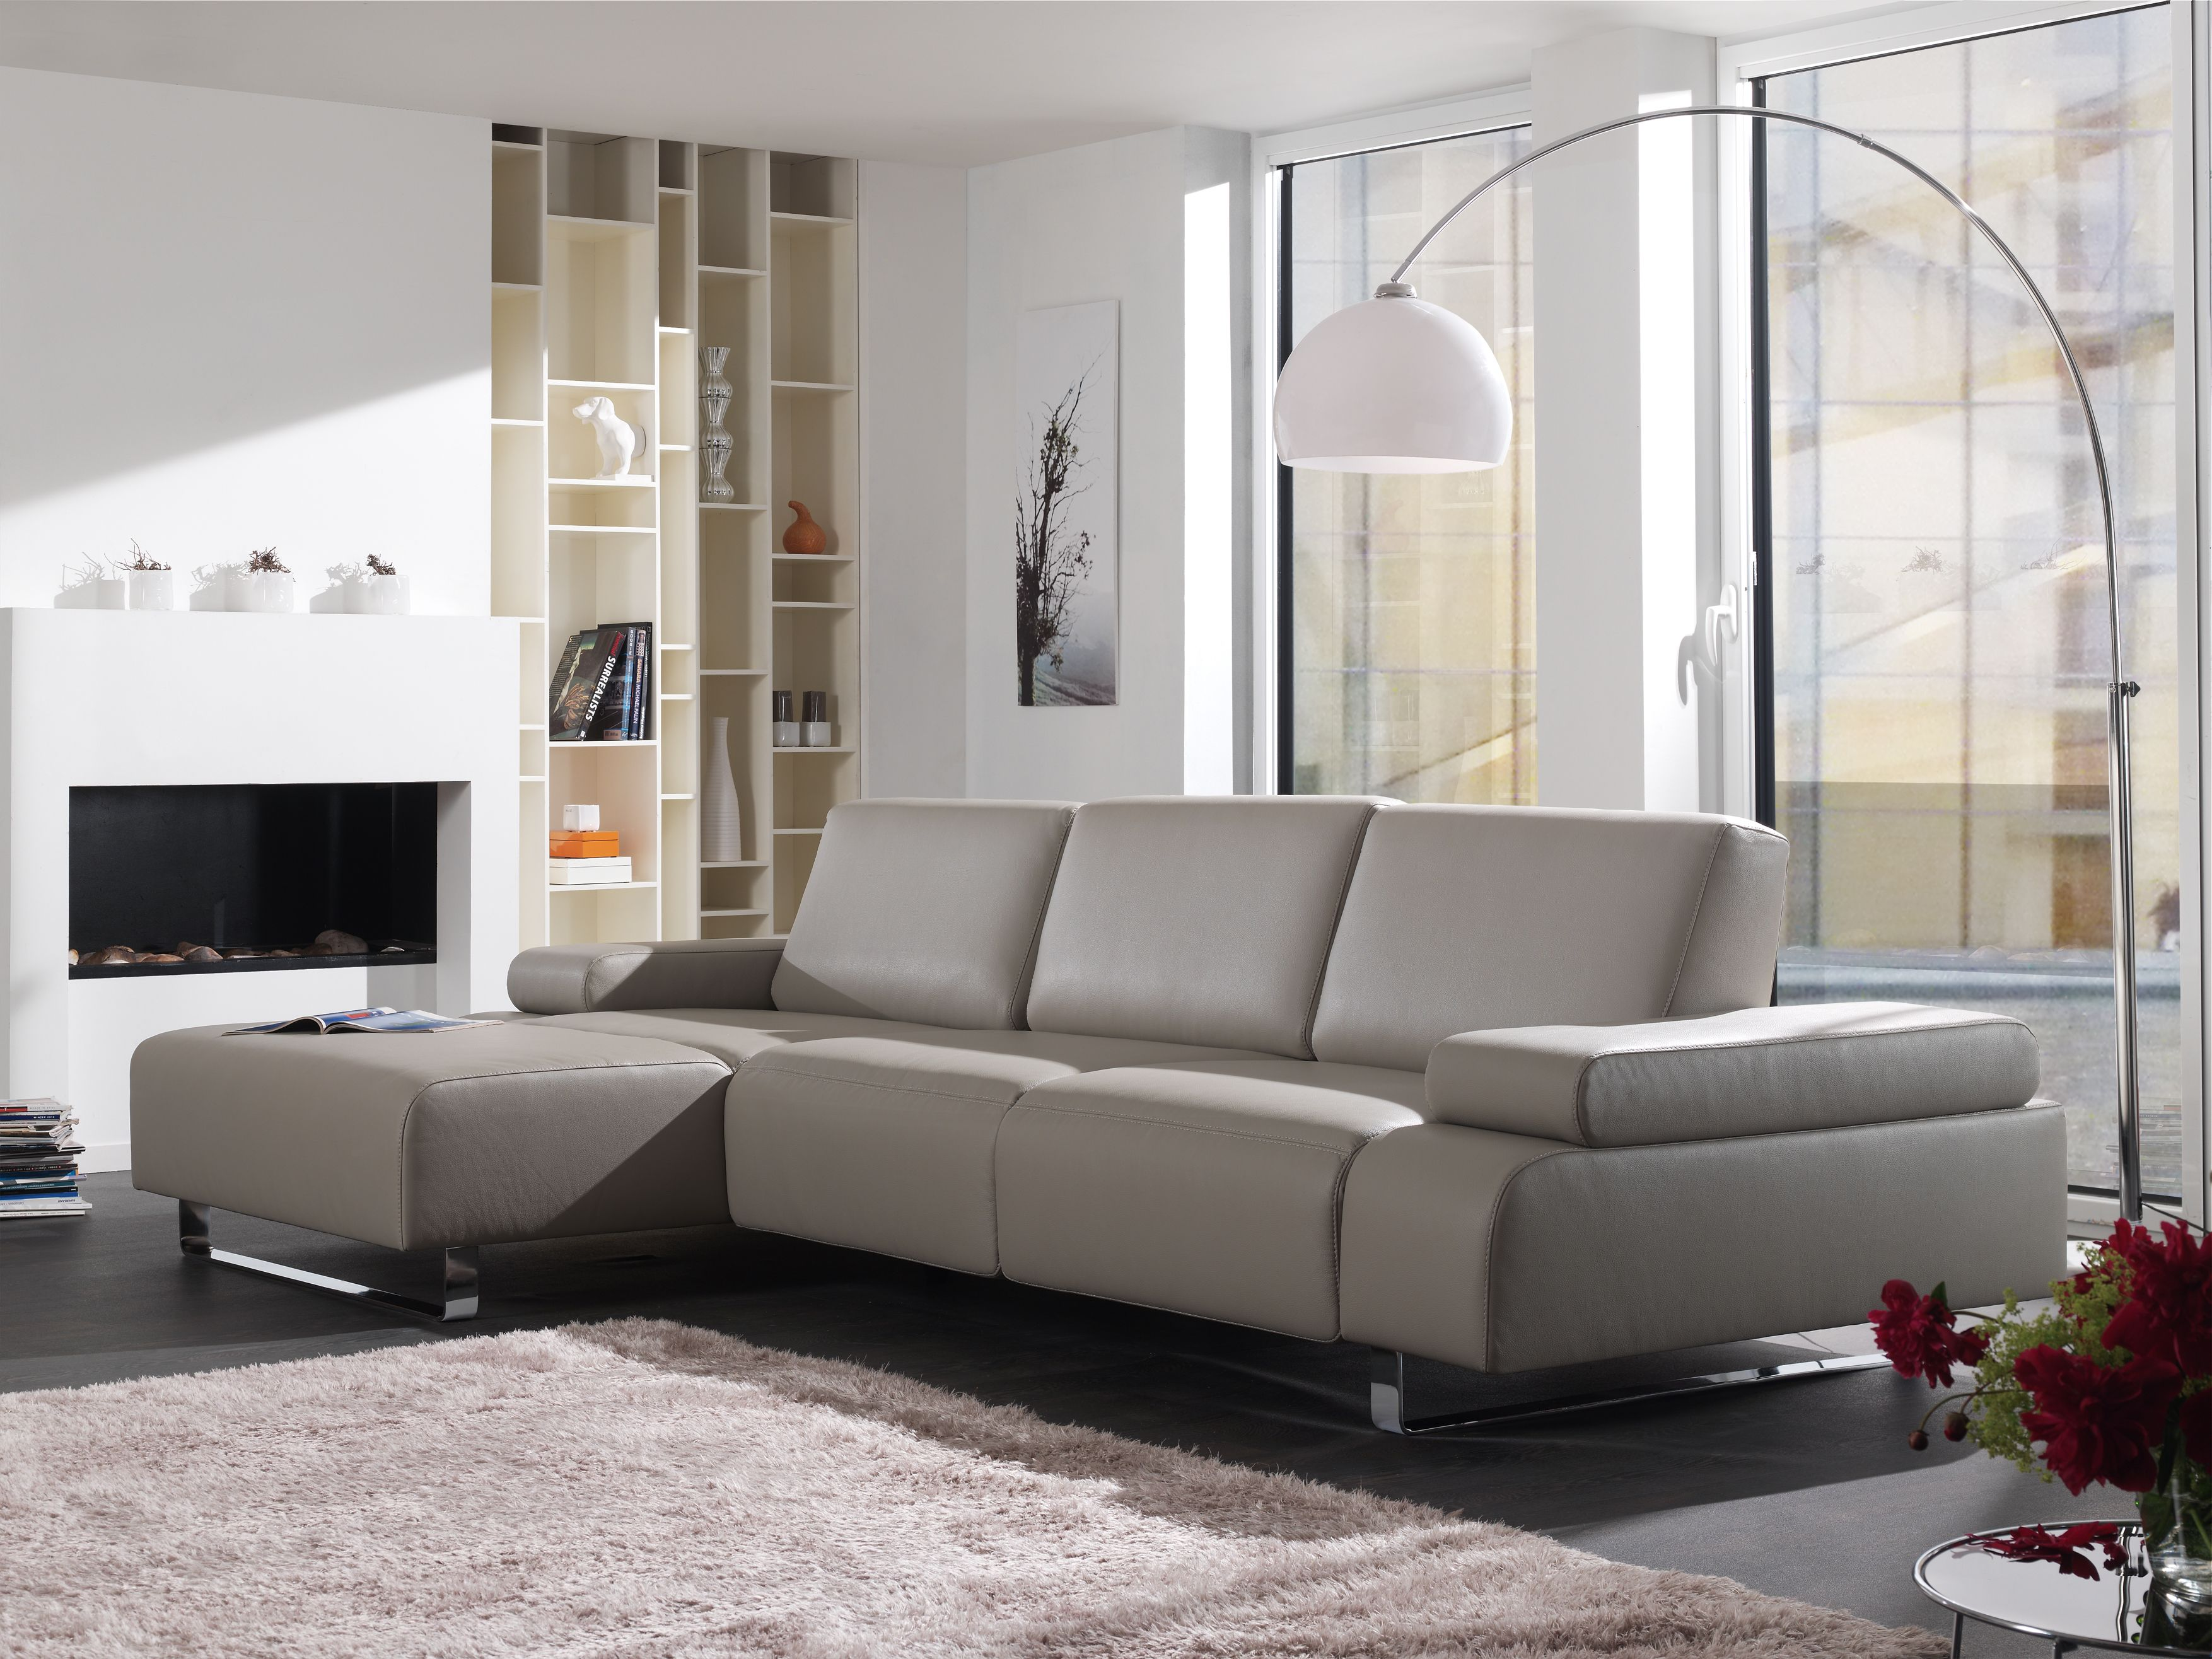 1137 best bankstellen images on pinterest couch and deco parisarafo Images